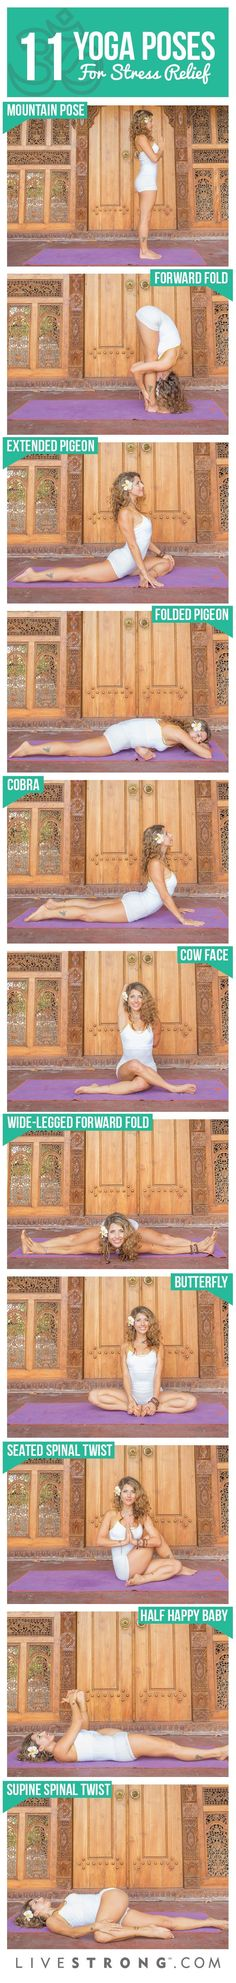 I like the pigeon pose ☺ 11 Yoga Poses to Eliminate Stress From Your Day Vinyasa Yoga, Yoga Bewegungen, Yoga Pilates, Yoga Moves, Ashtanga Yoga, Yoga Meditation, Men Yoga, Iyengar Yoga, Yoga Exercises